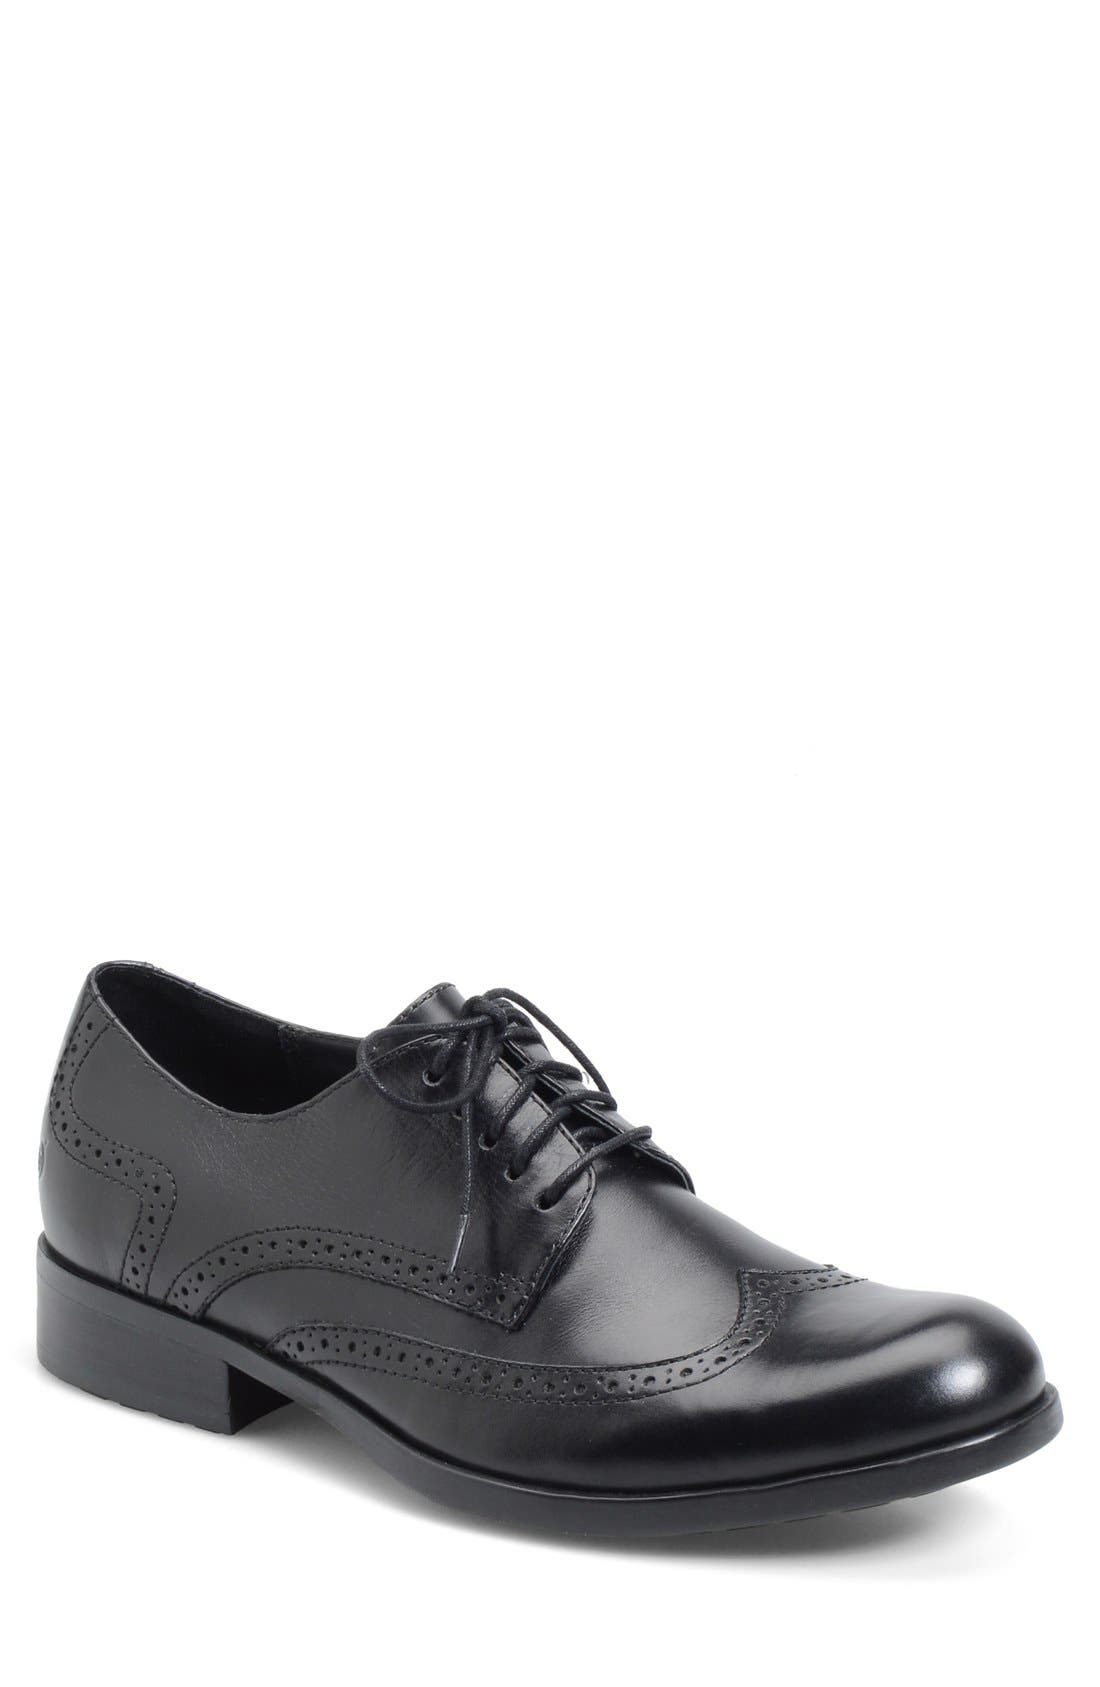 'Paulo' Wingtip,                         Main,                         color, Black